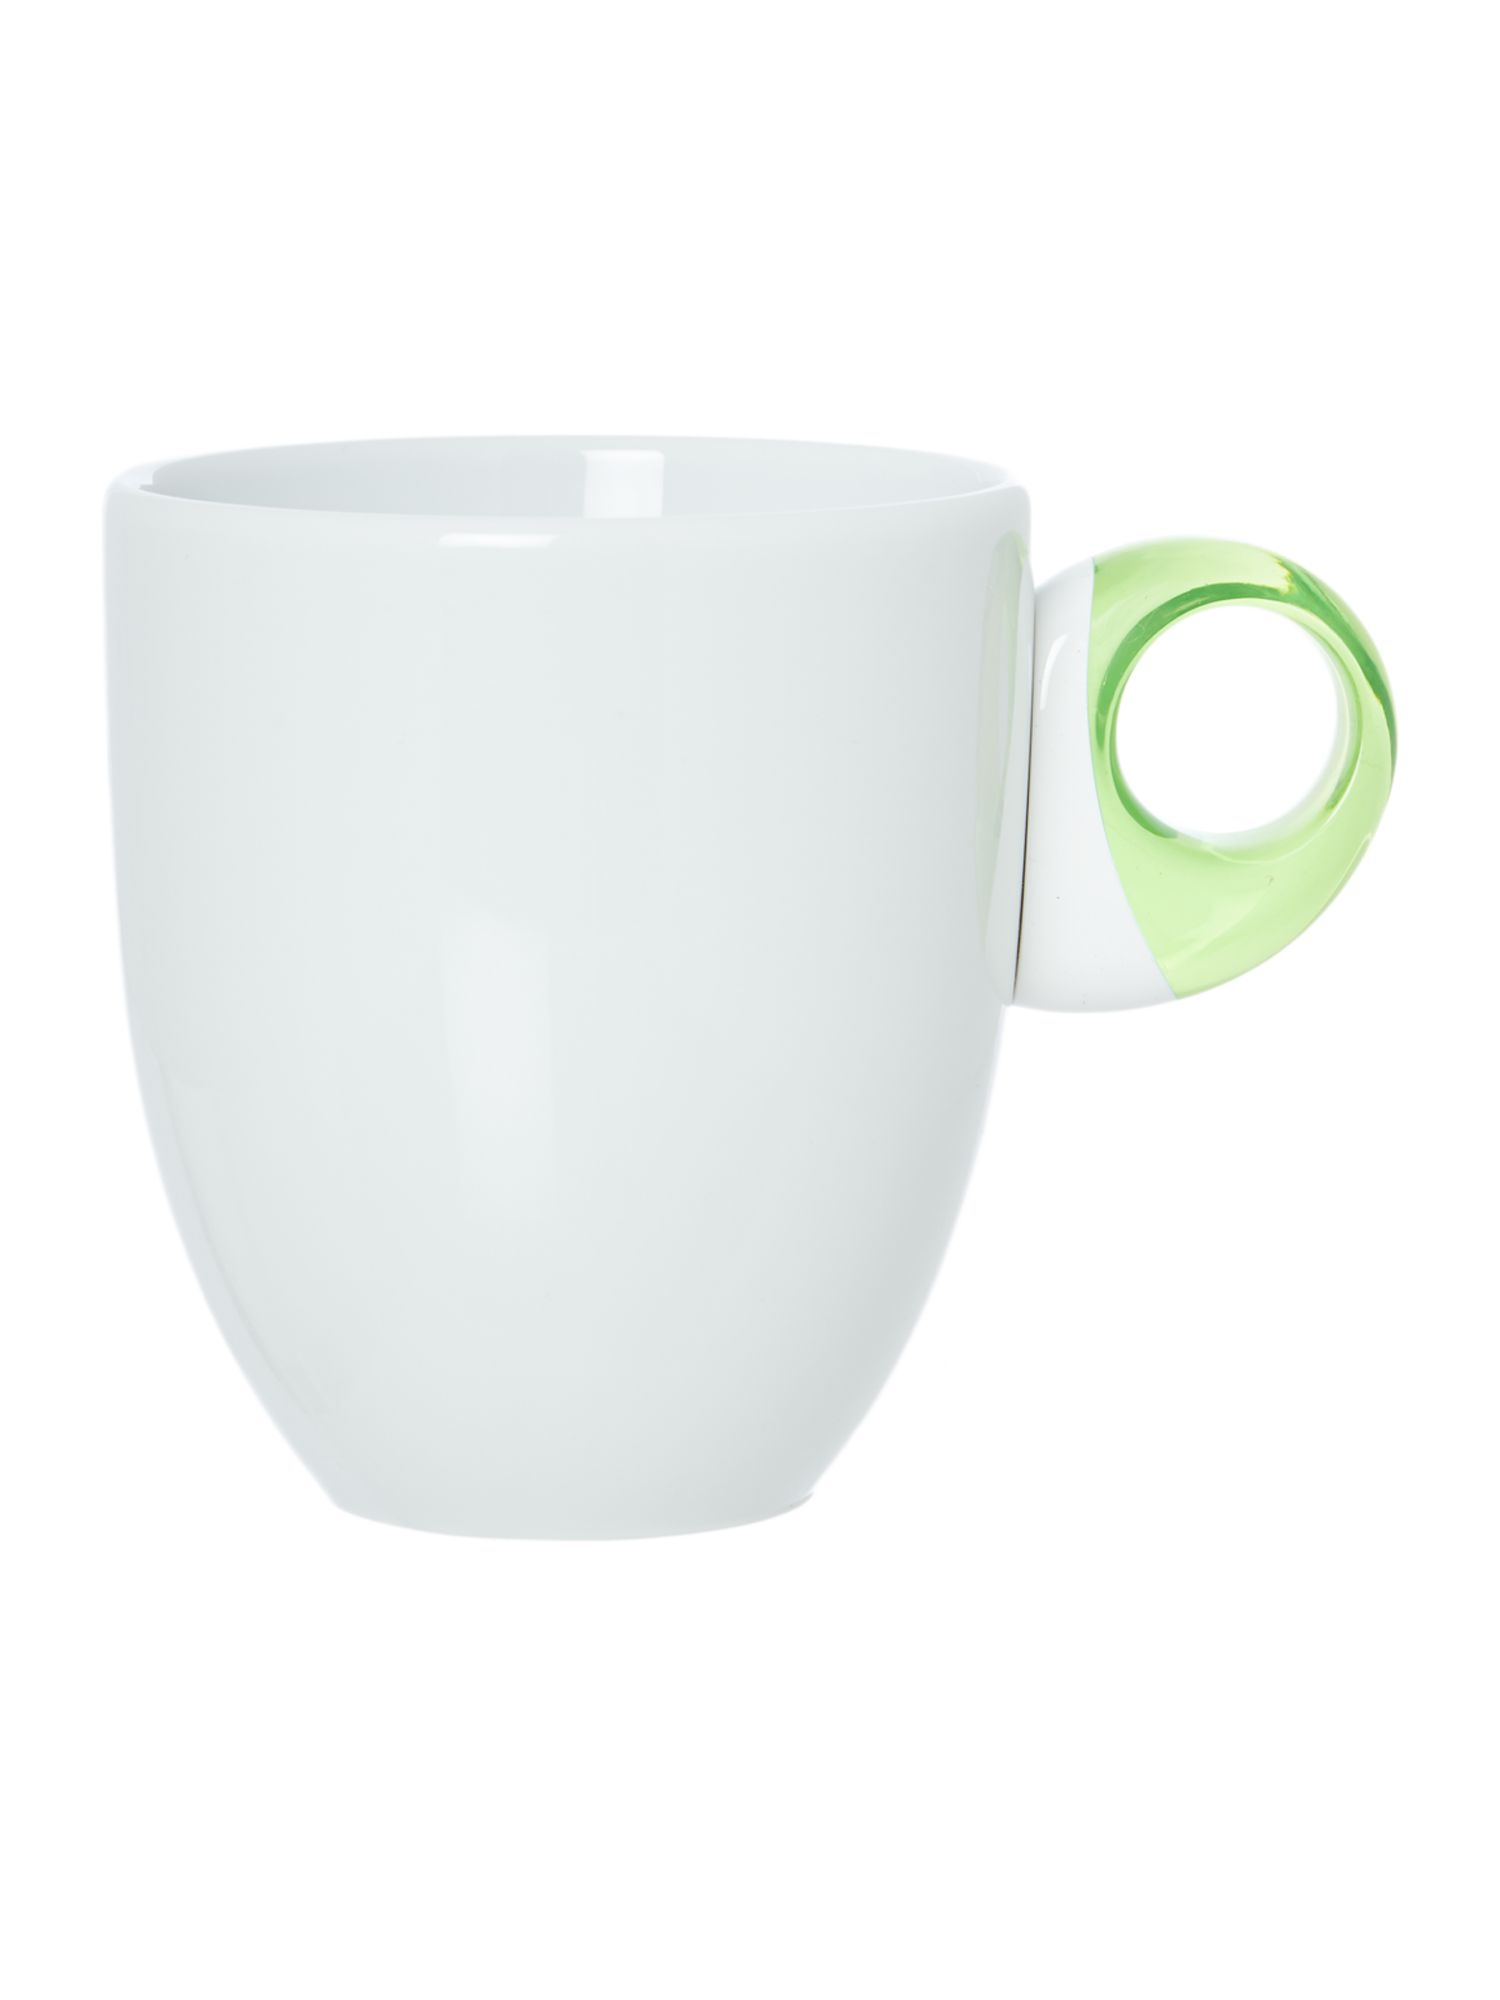 Mug Feeling Acid Green